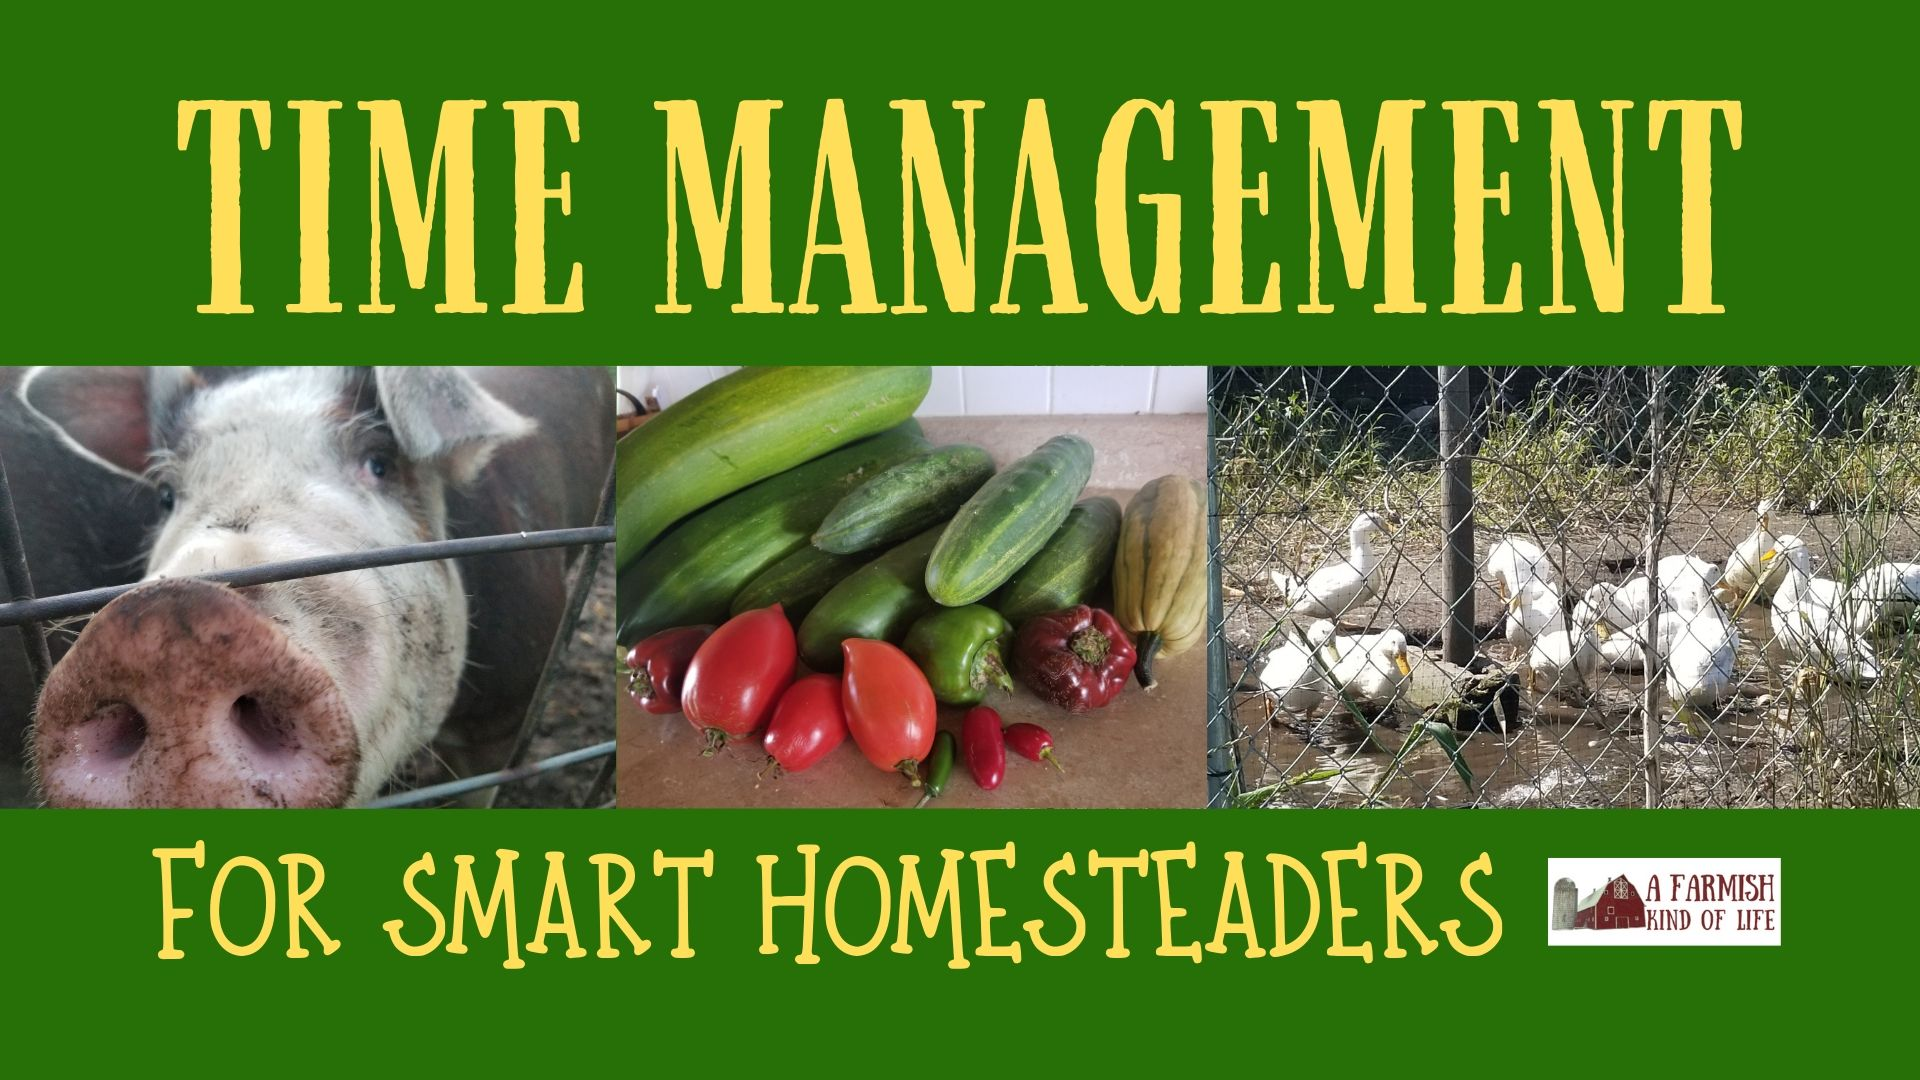 061: Time Management for Smart Homesteaders